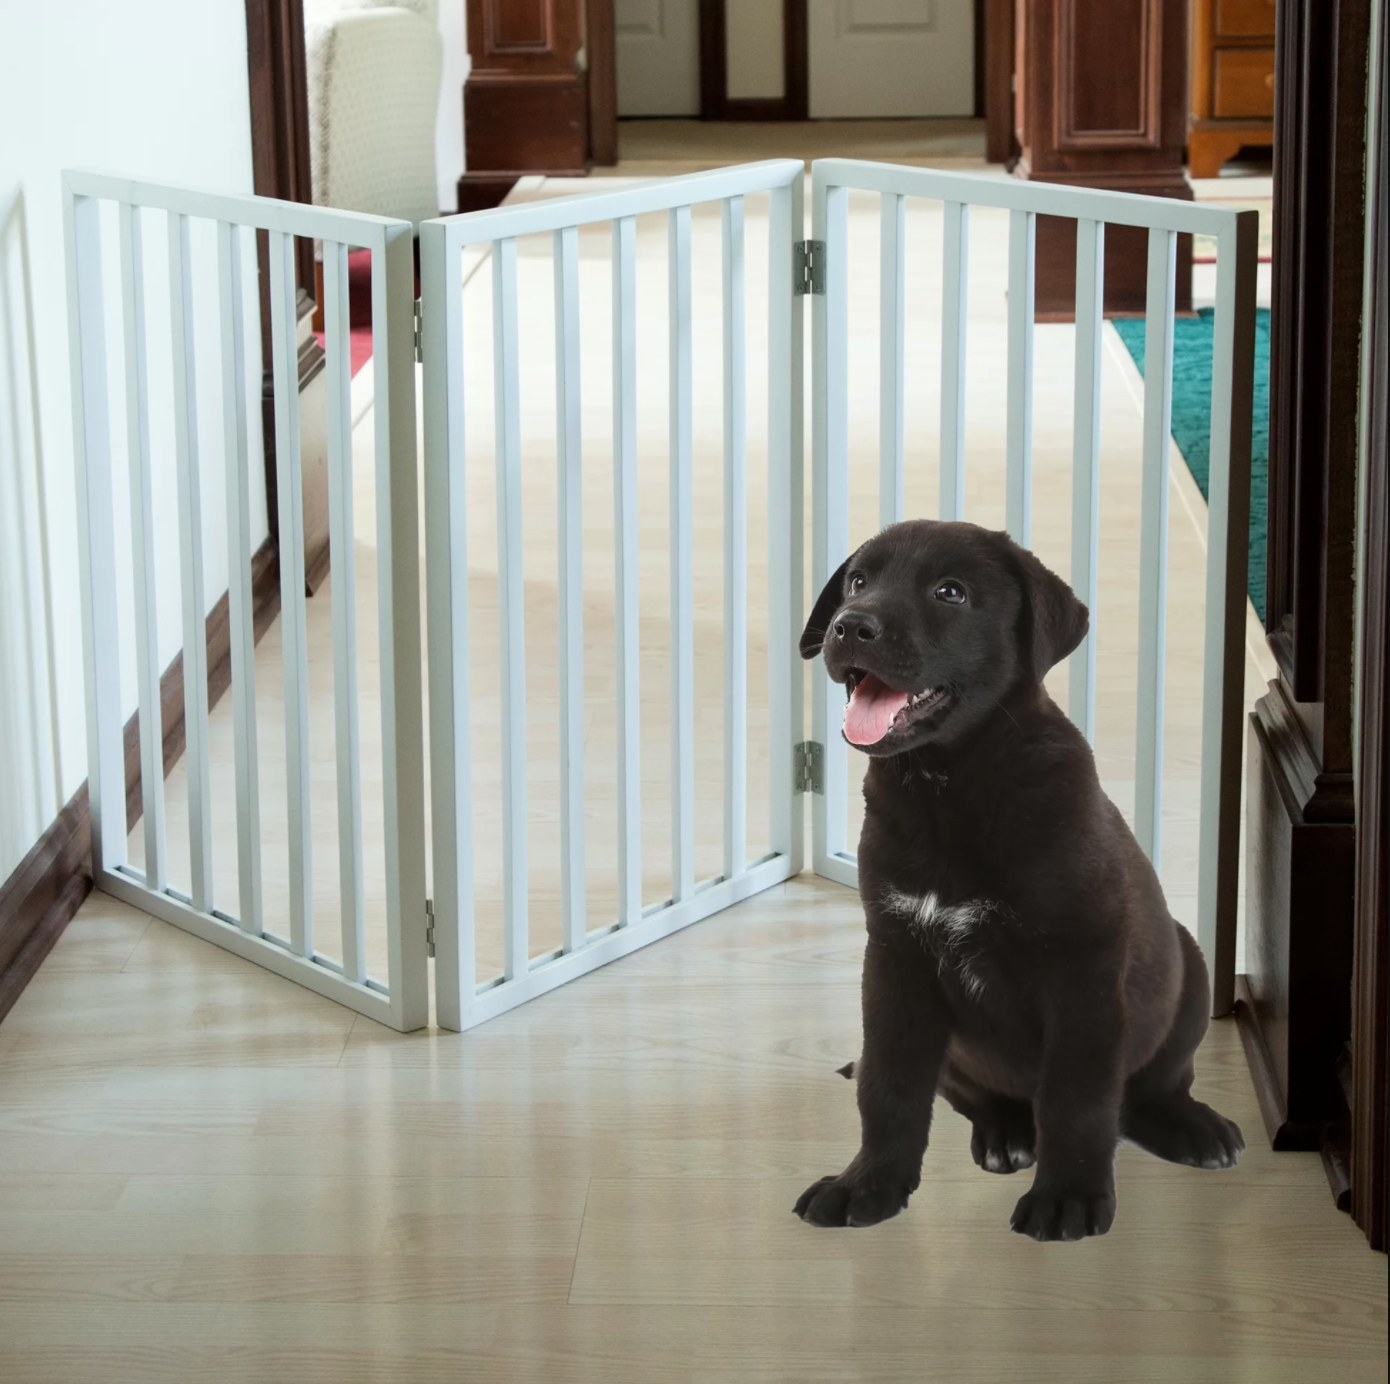 The pet gate with a puppy sitting in front of it